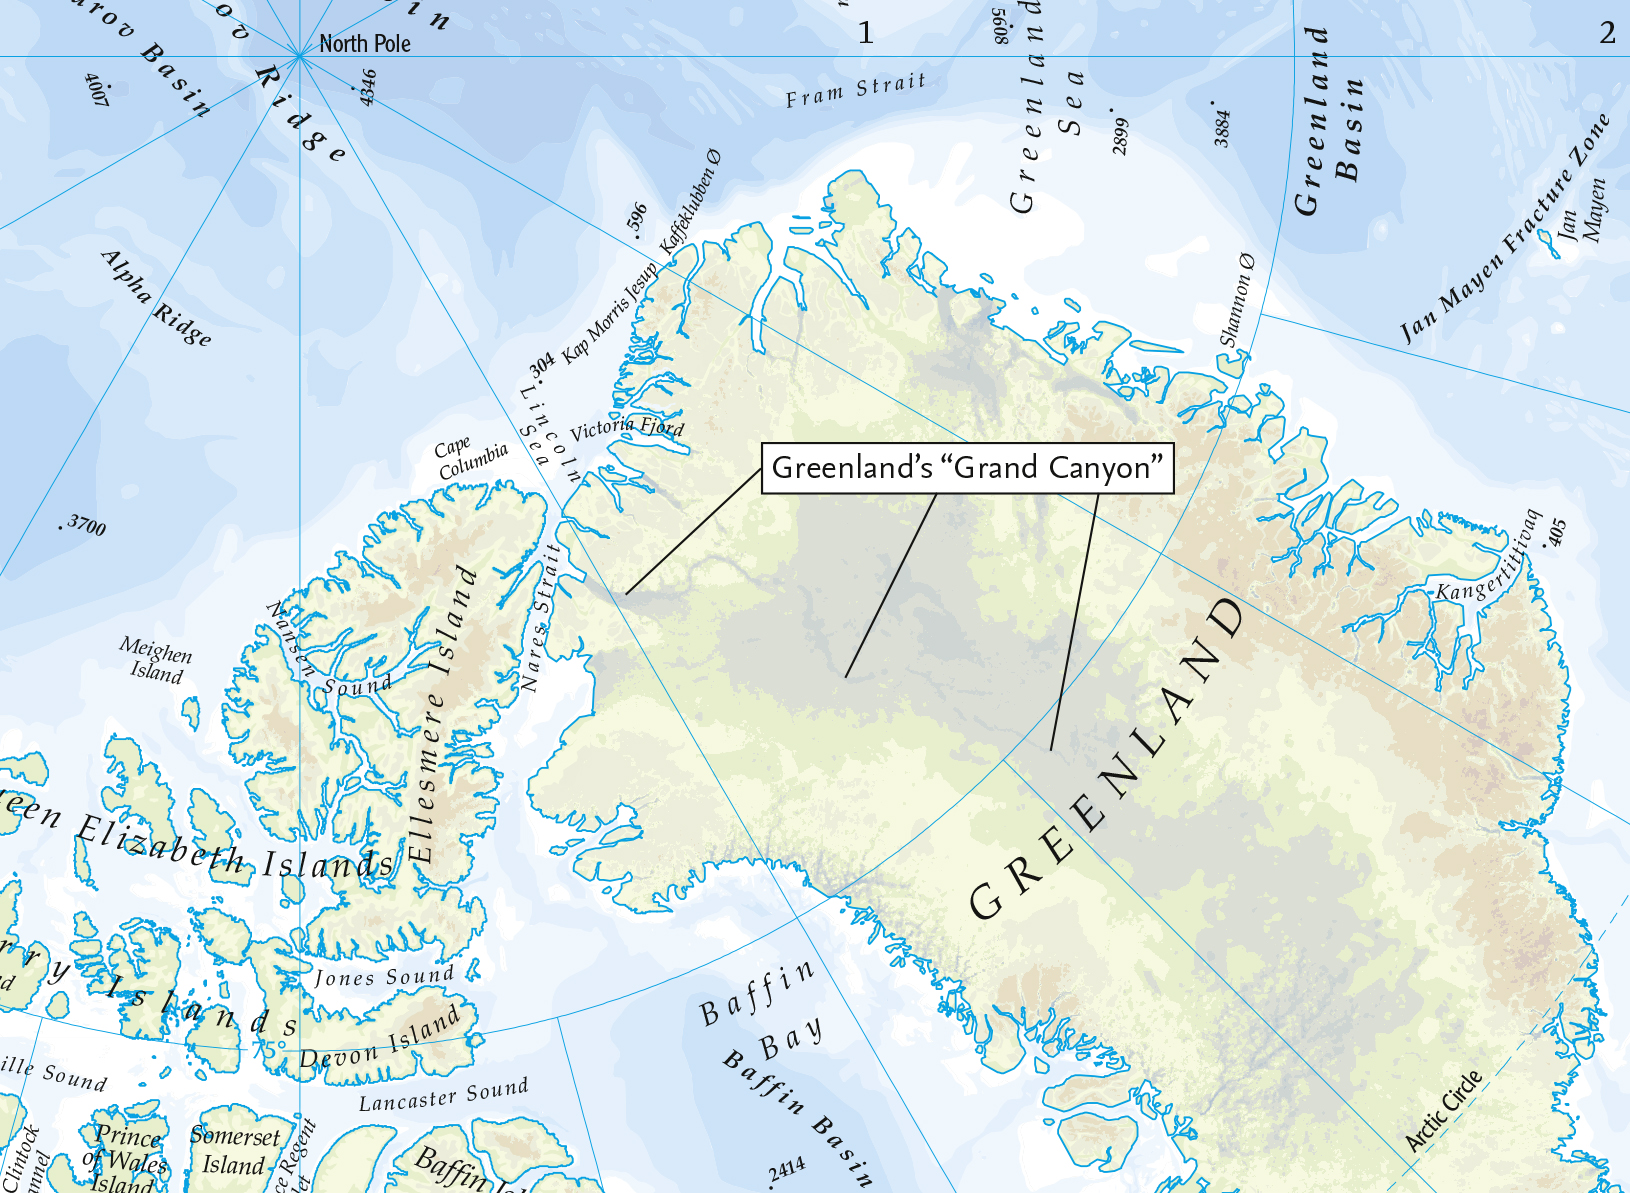 Times atlas mapping the polar regions in the arctic greenlands mega canyon of record length over 750 km long and 800 m deep discovered under the greenland ice sheet in 2013 is clearly sciox Image collections